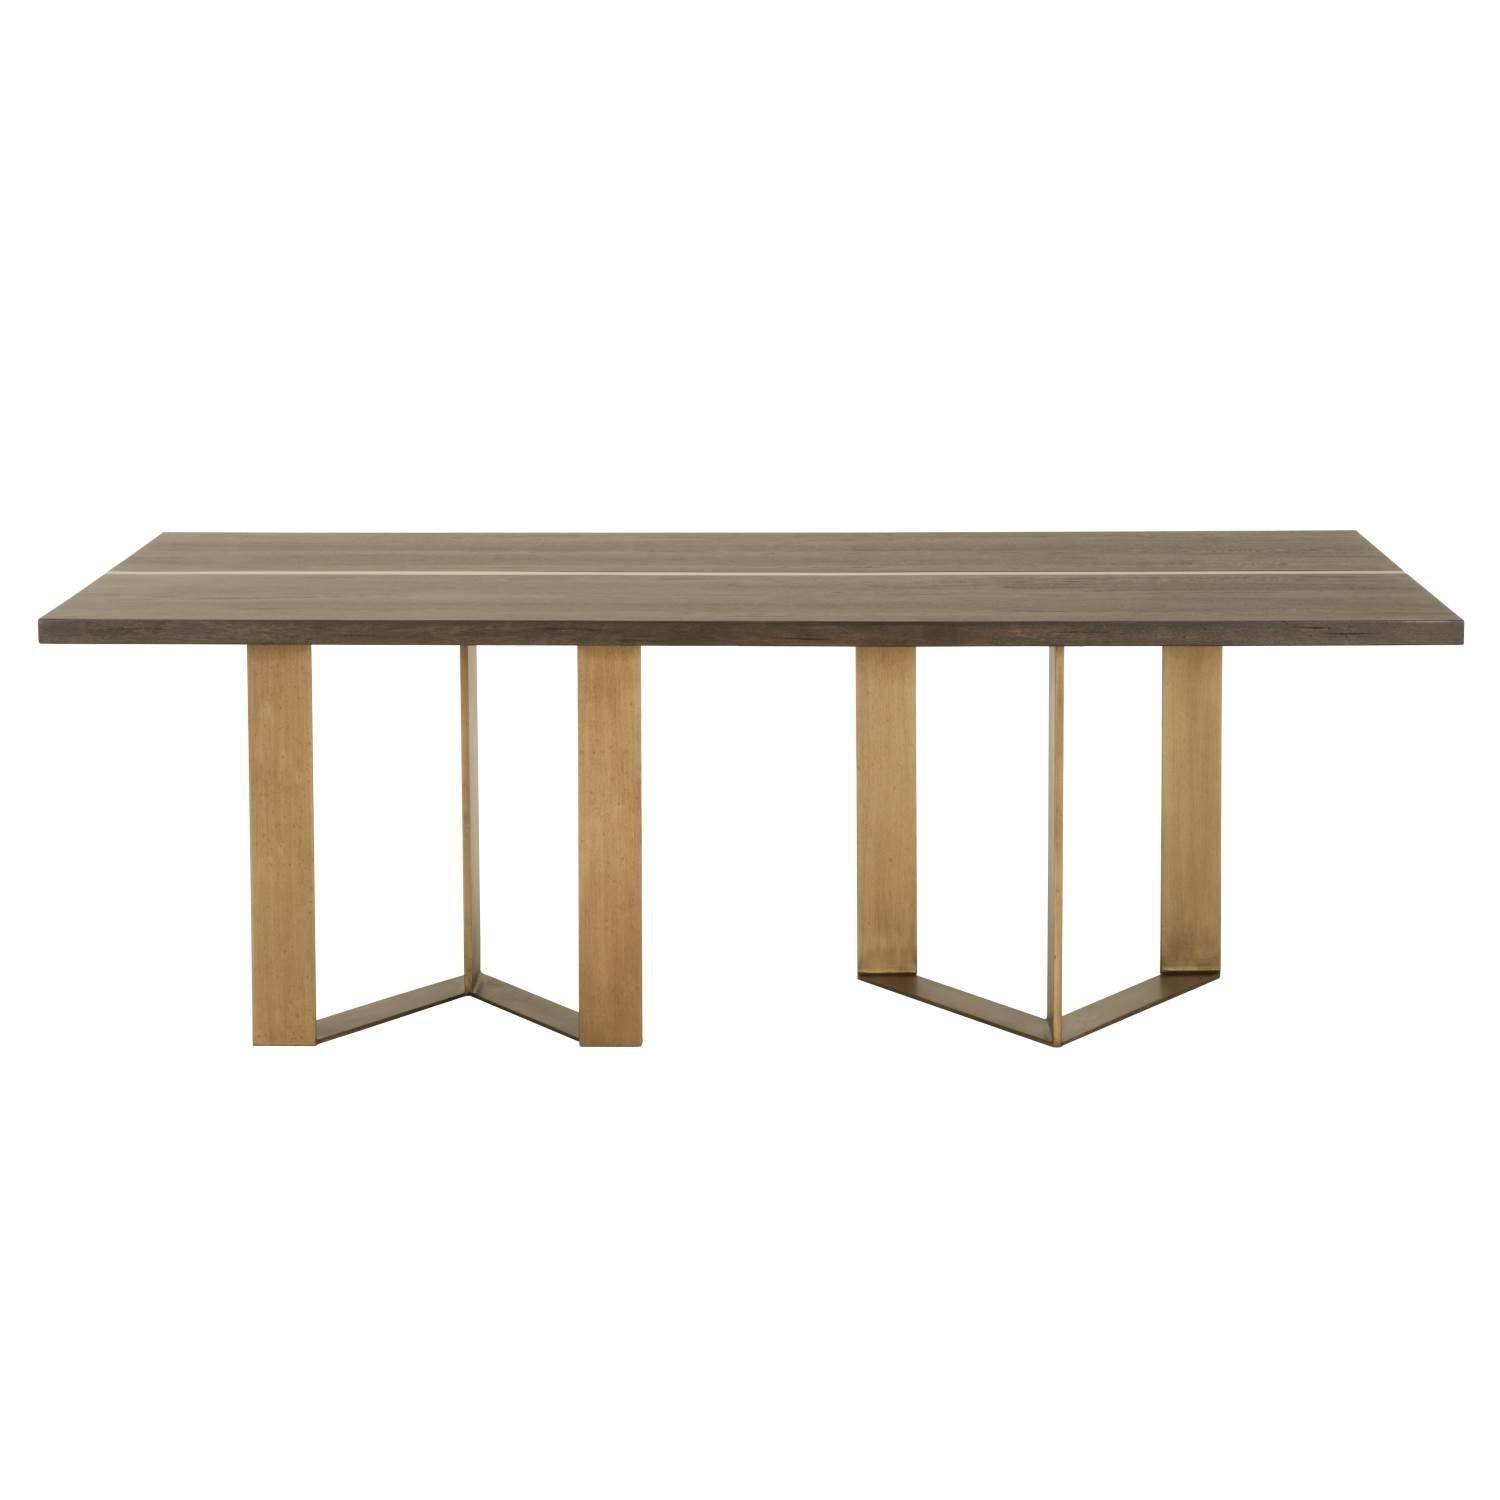 Midtown Dining Table in Whiskey Oak